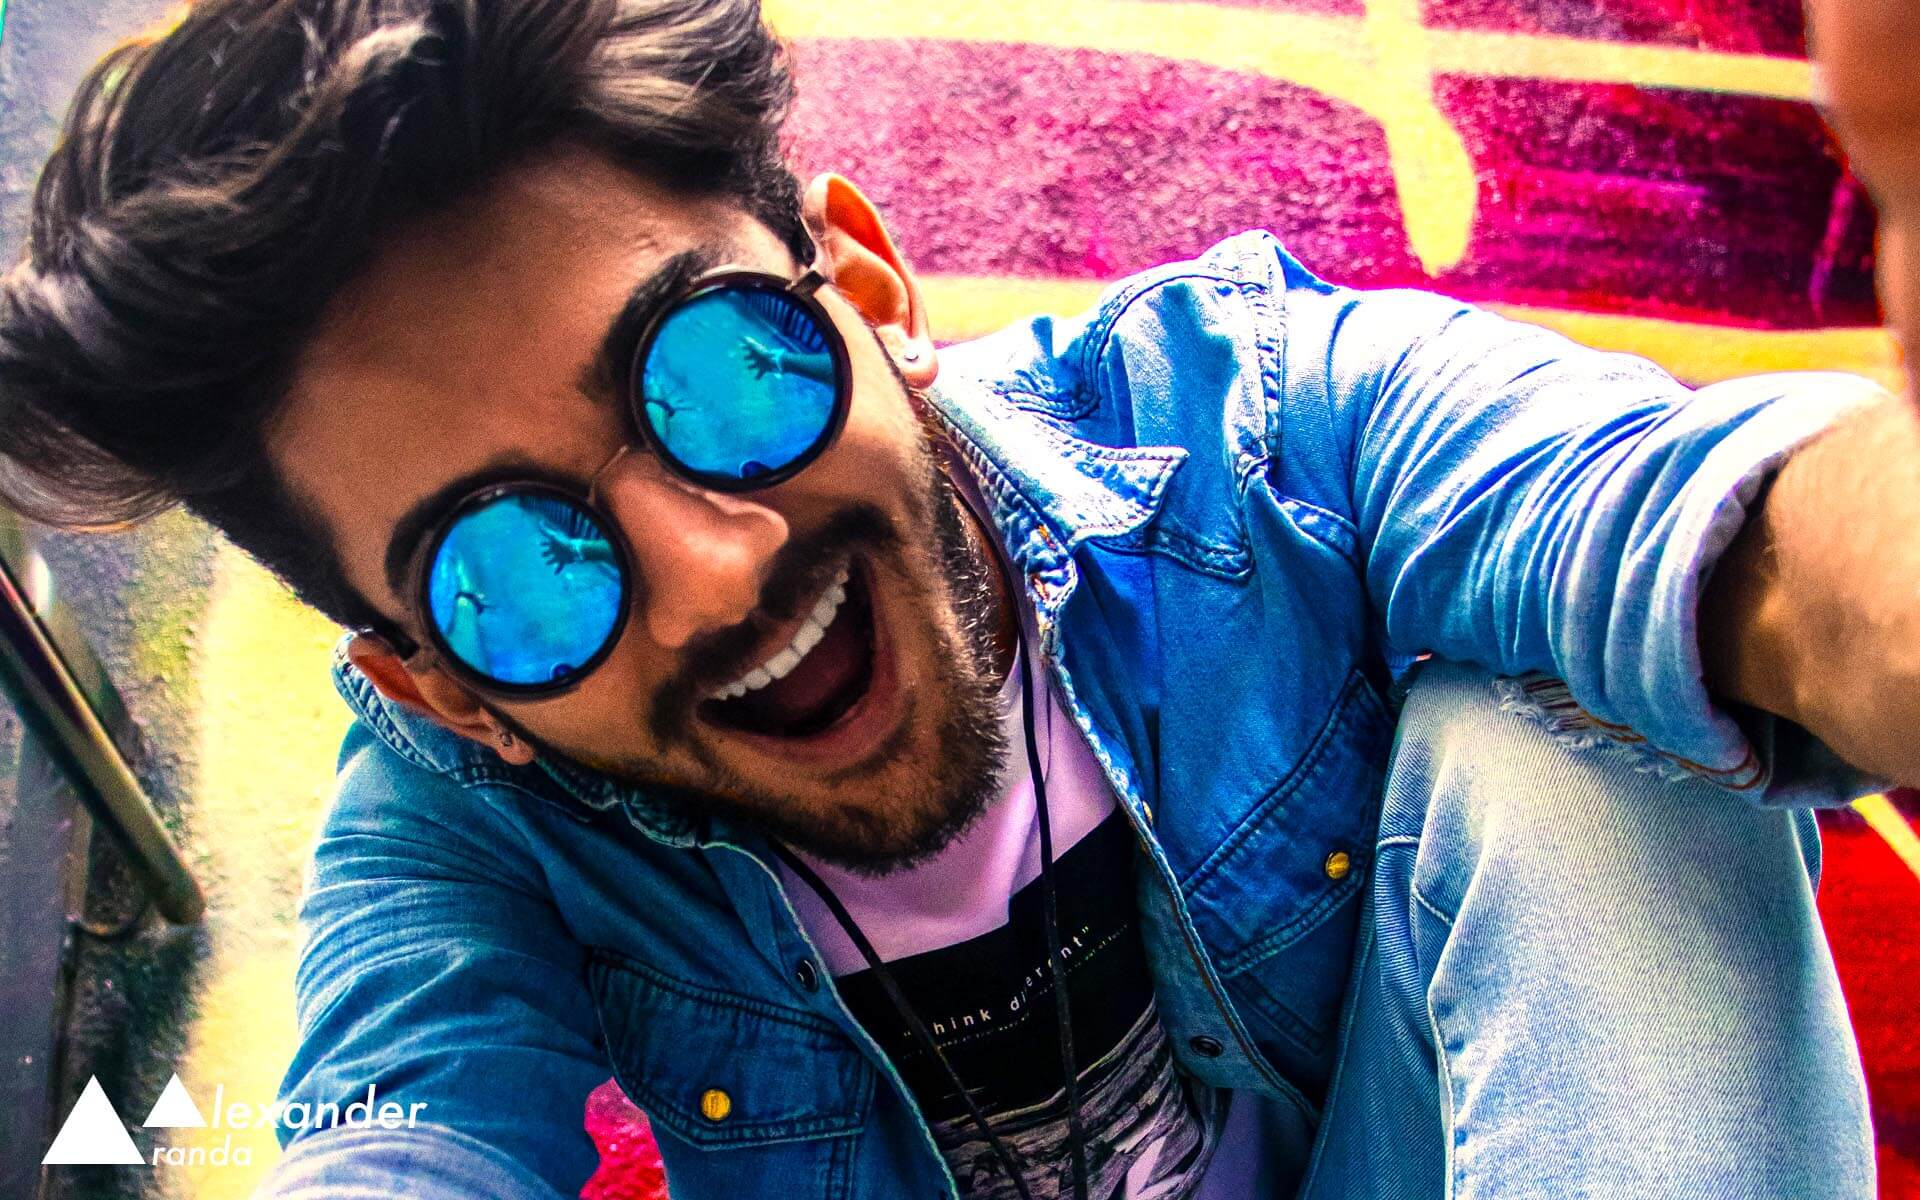 Fun picture of a guy with blue sunglasses